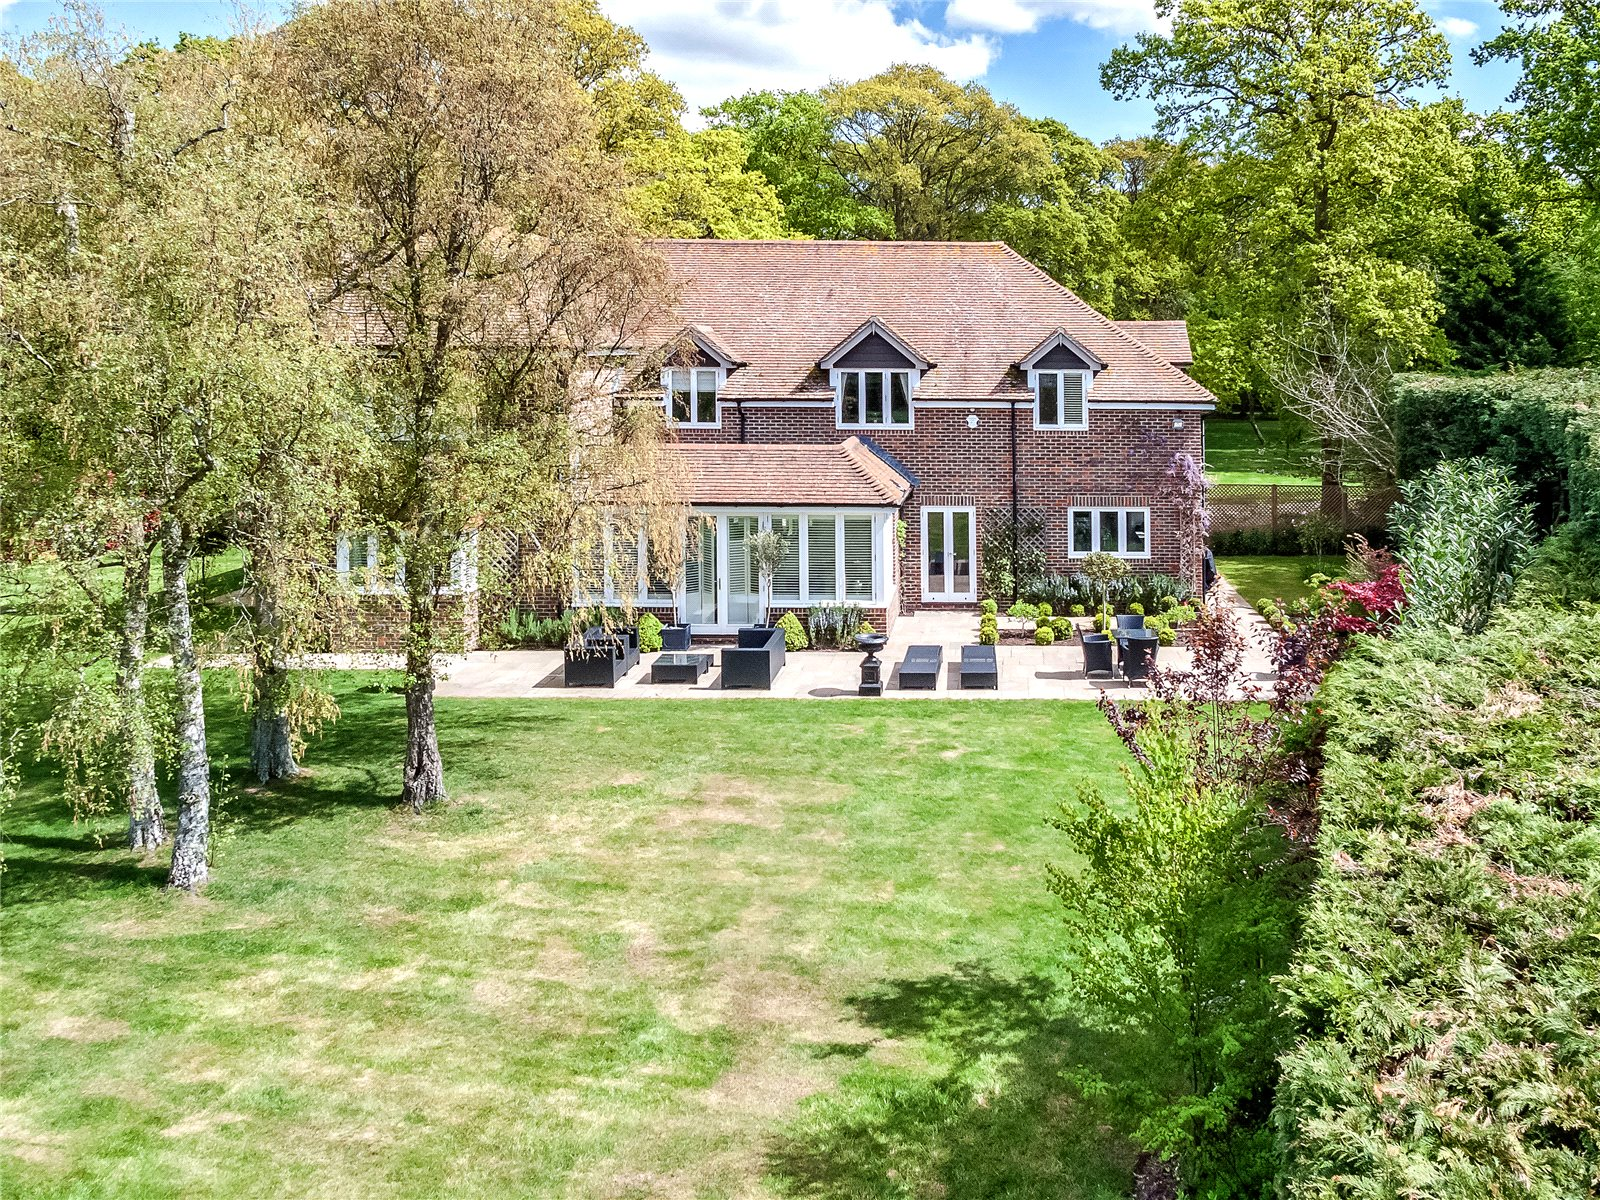 Additional photo for property listing at Bosham Hoe, Bosham, Chichester, West Sussex, PO18 Chichester, Inglaterra